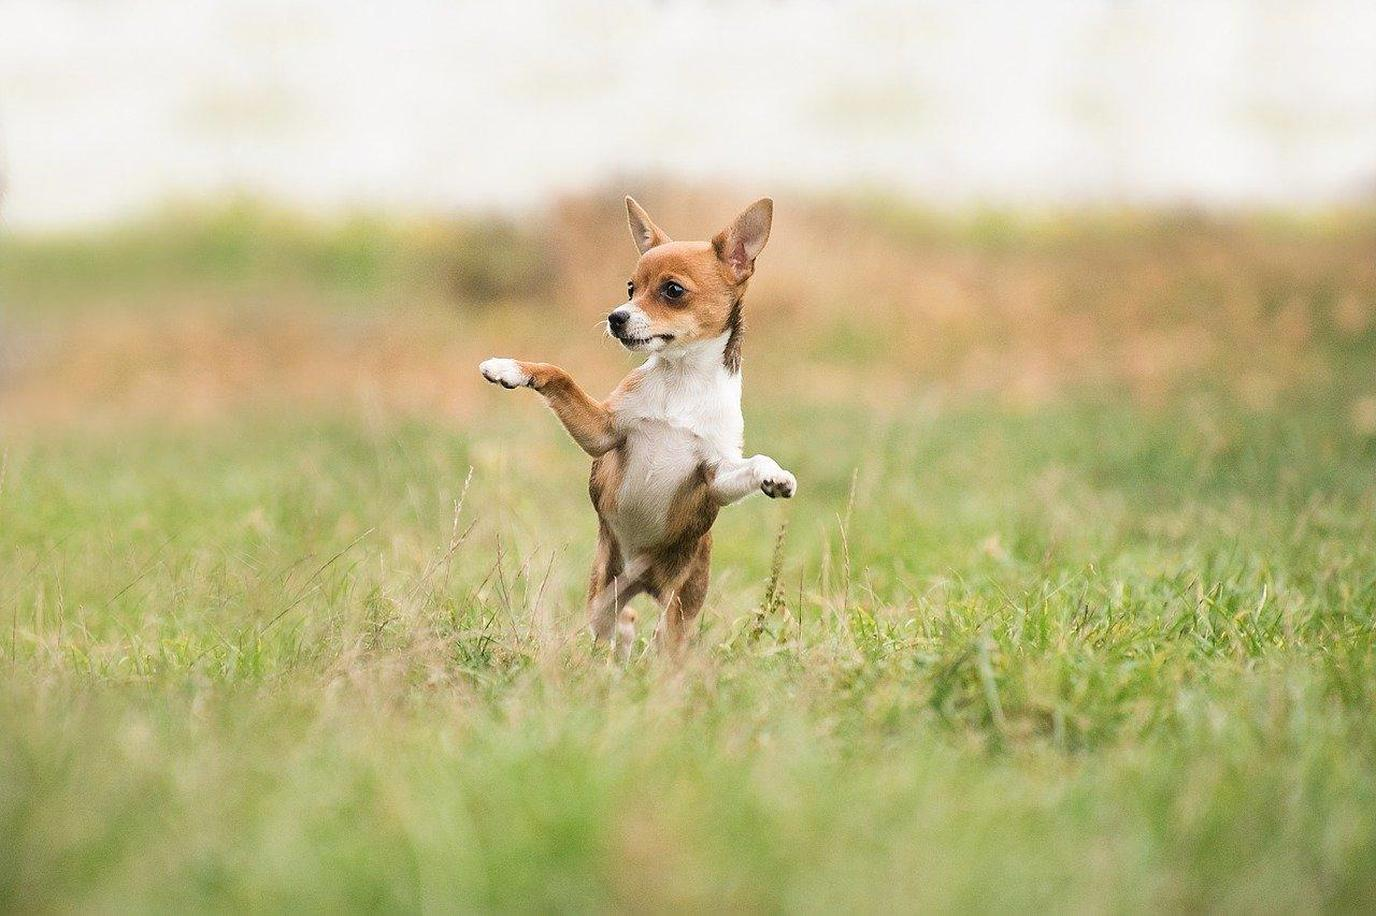 A Chihuahua Stands on Hind Legs in the Grass.